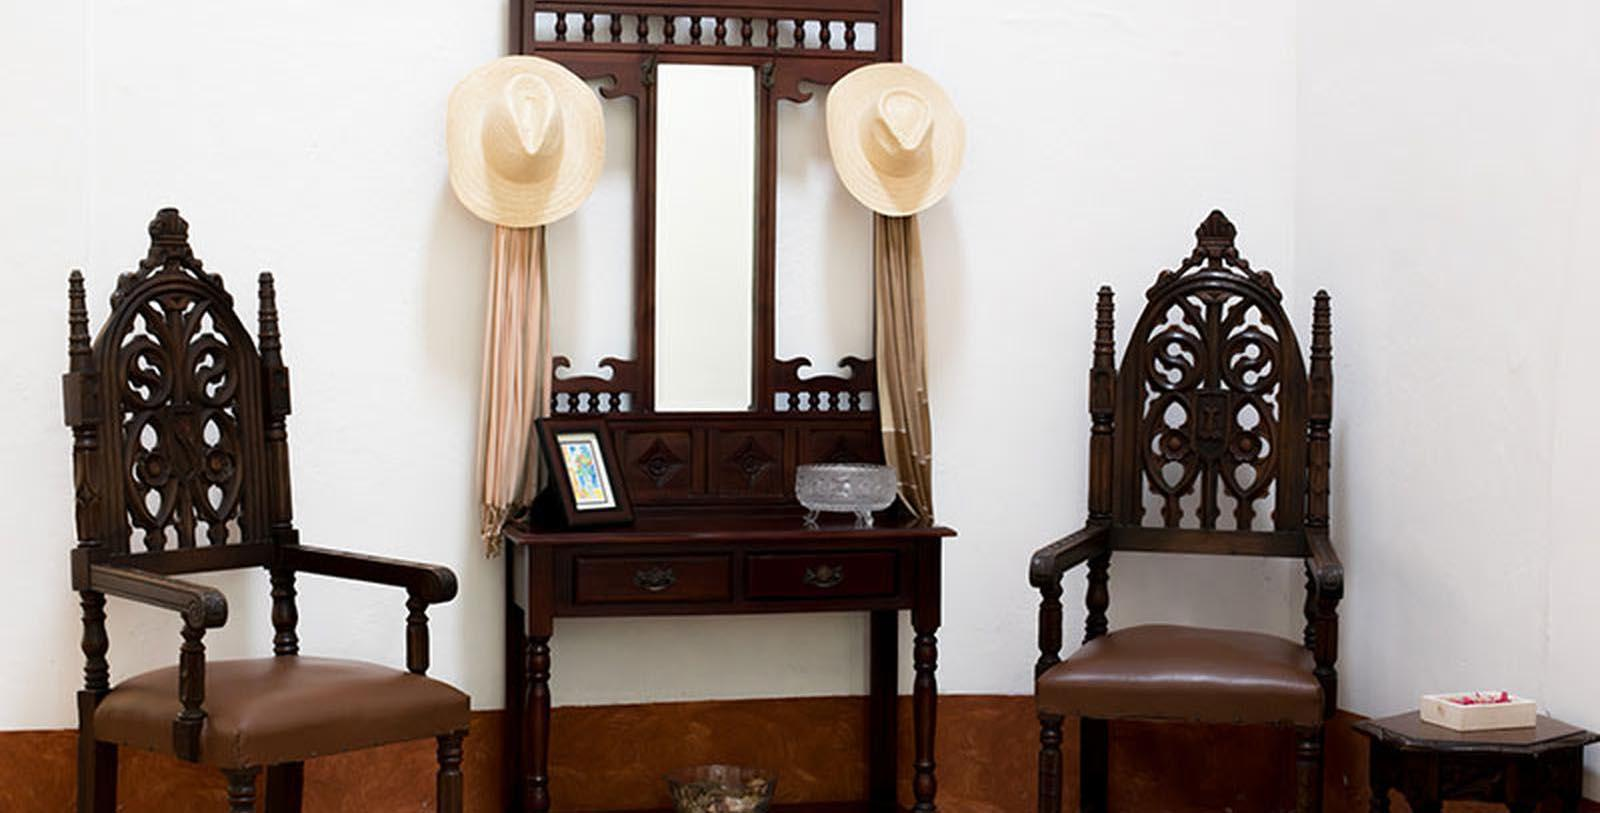 Image of Hotel Interior Detail, Hacienda La Magdalena, Zapopan, Mexico, 1735, Member of Historic Hotels Worldwide, Discover